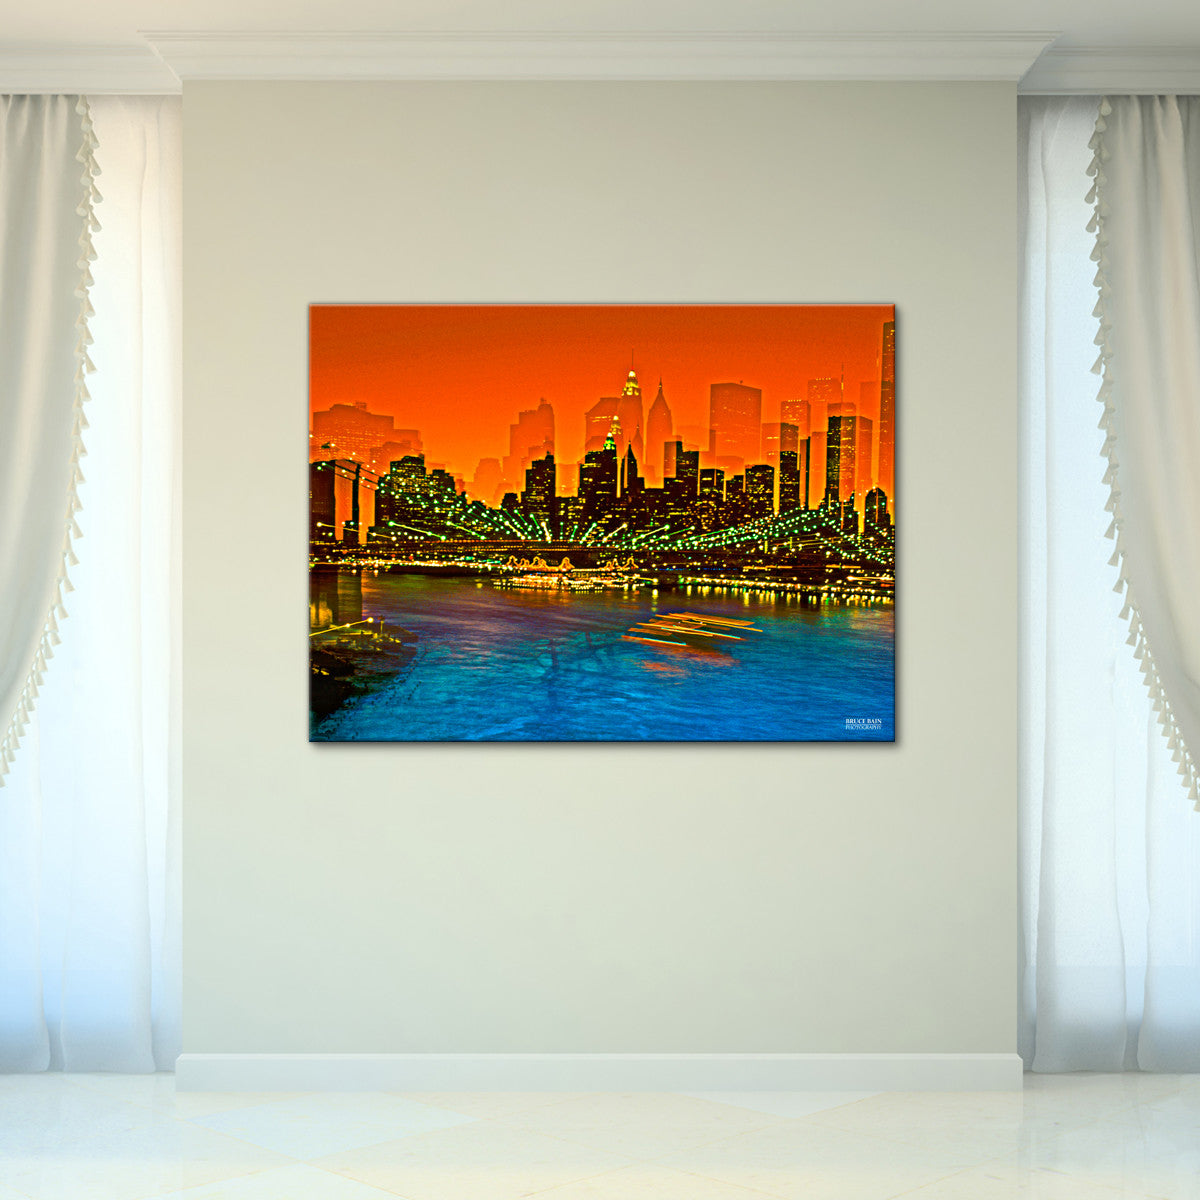 Bruce Bain 'Brooklyn Bridge 3' 30x40 inch Canvas Wall Art